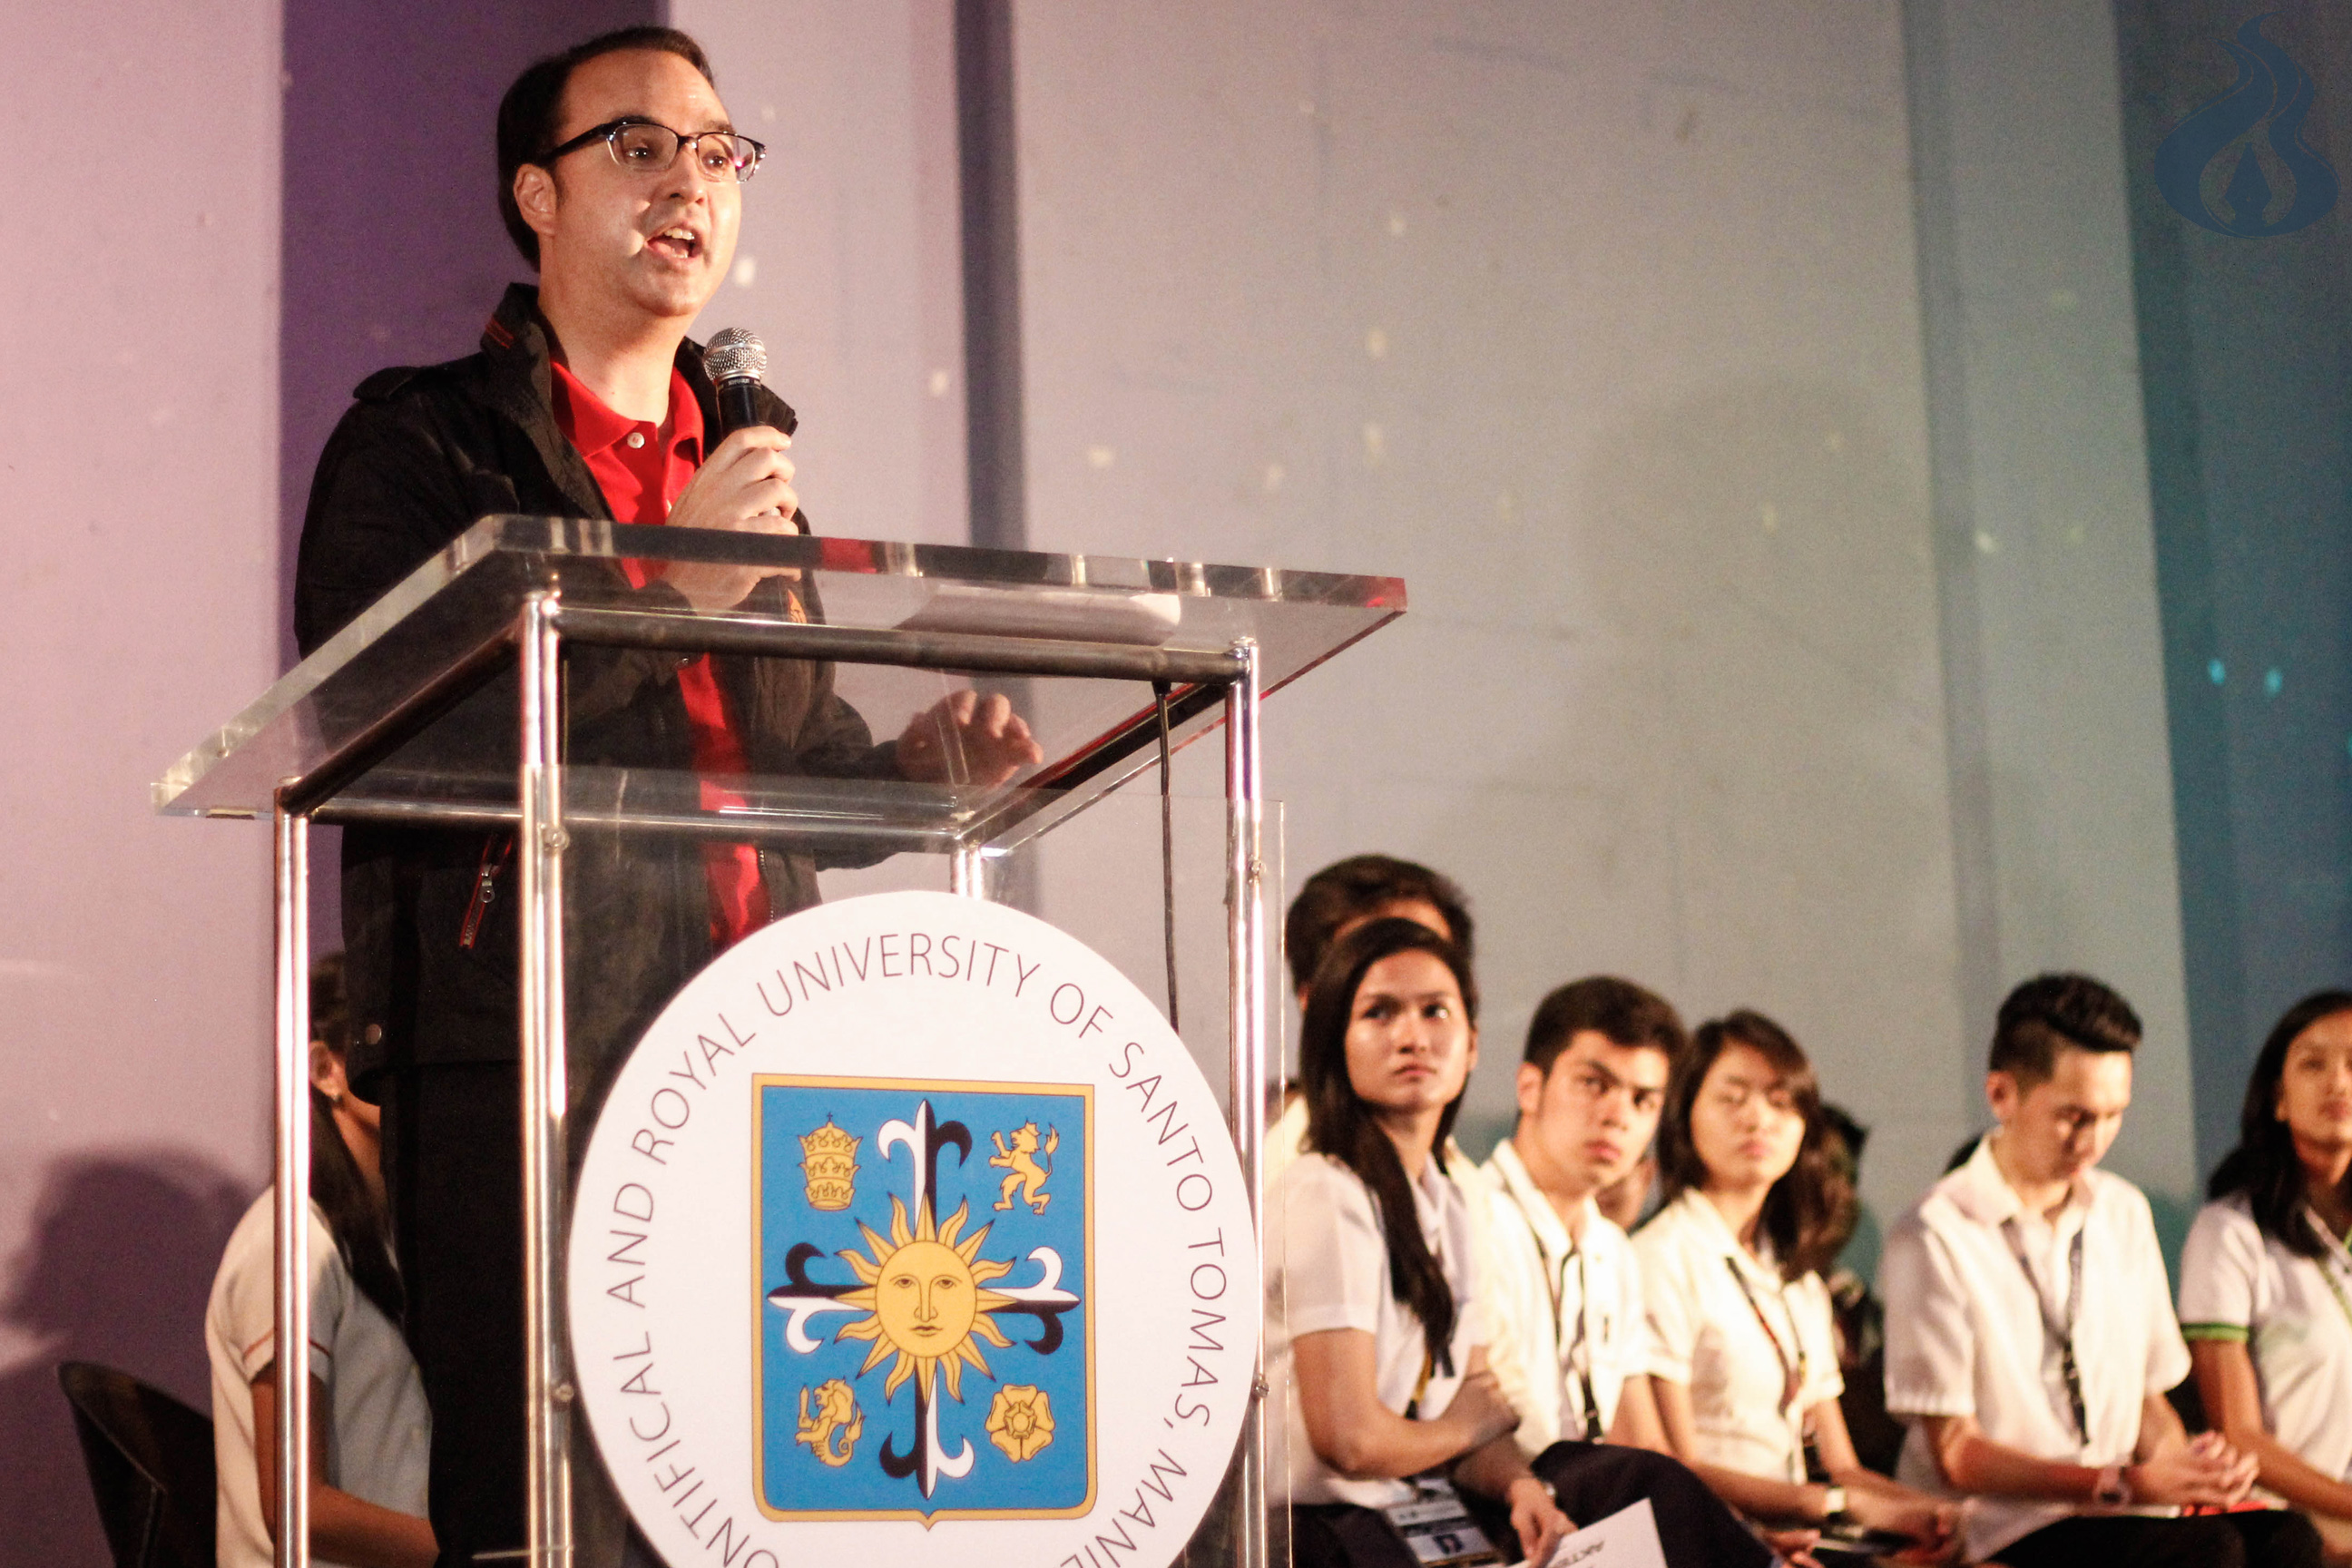 VP bet Cayetano bares platforms for 2016 polls, pushes for federalism; Duterte a no-show